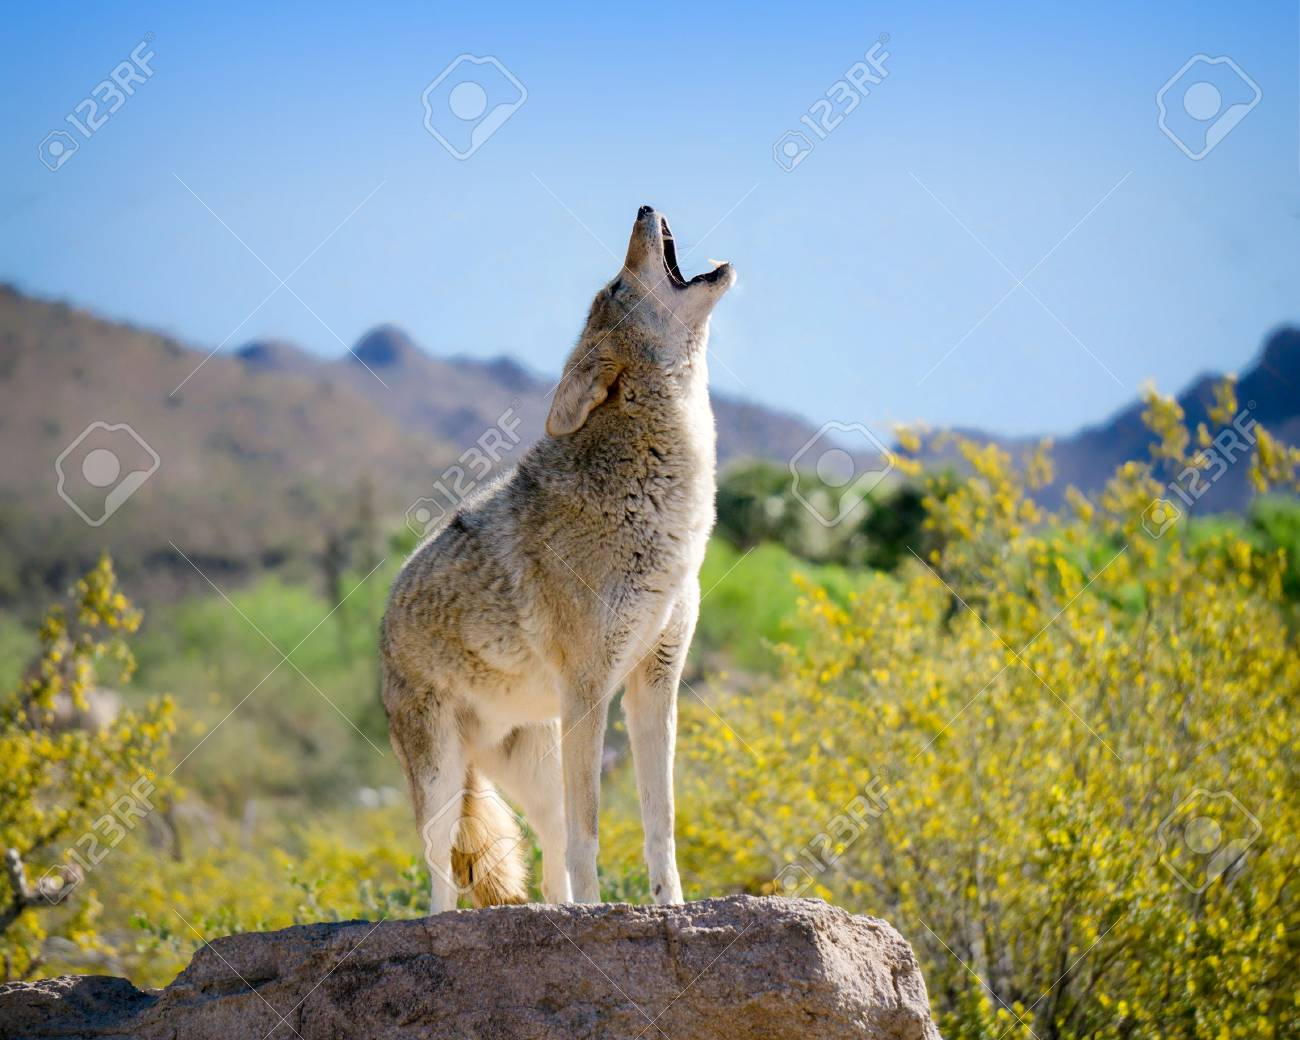 Coyote Howling in American Southwest - 80698237